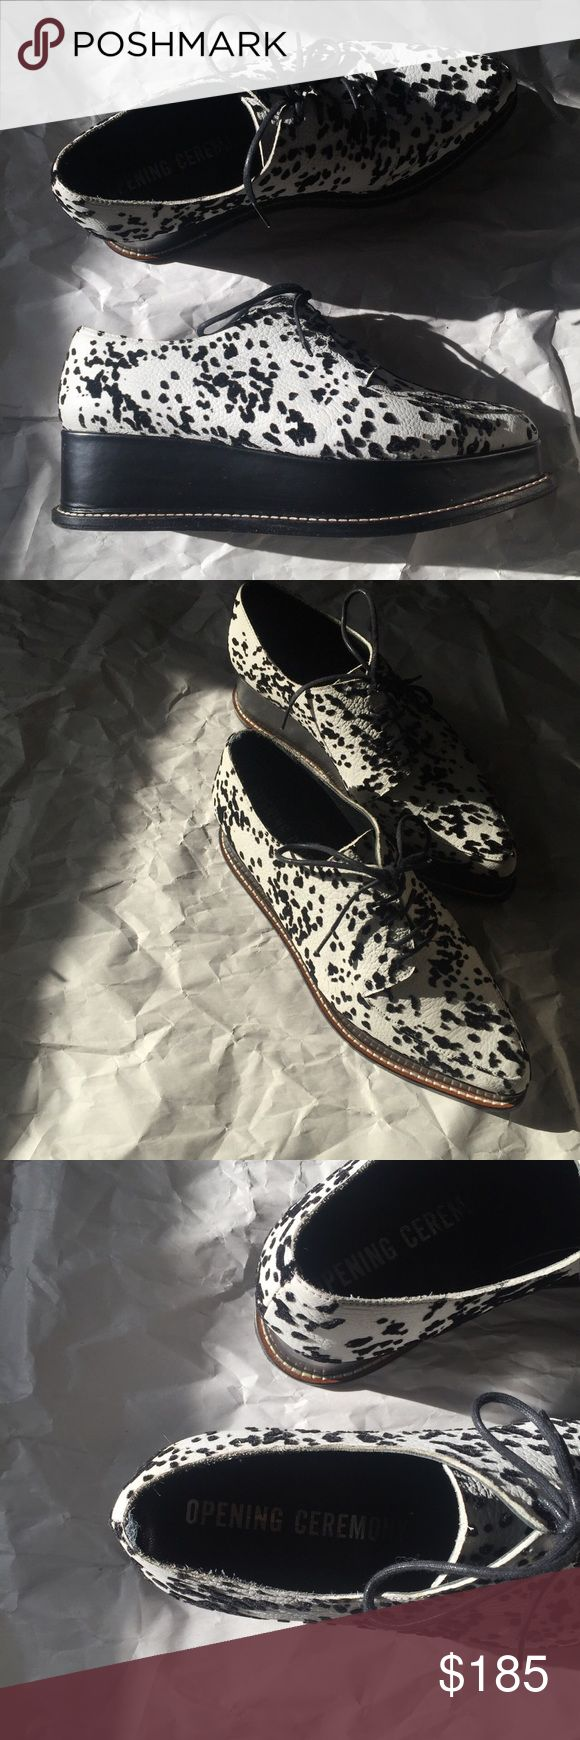 opening ceremony creepers #leather #animalprint #openingceremony #creepers Opening Ceremony Shoes Platforms